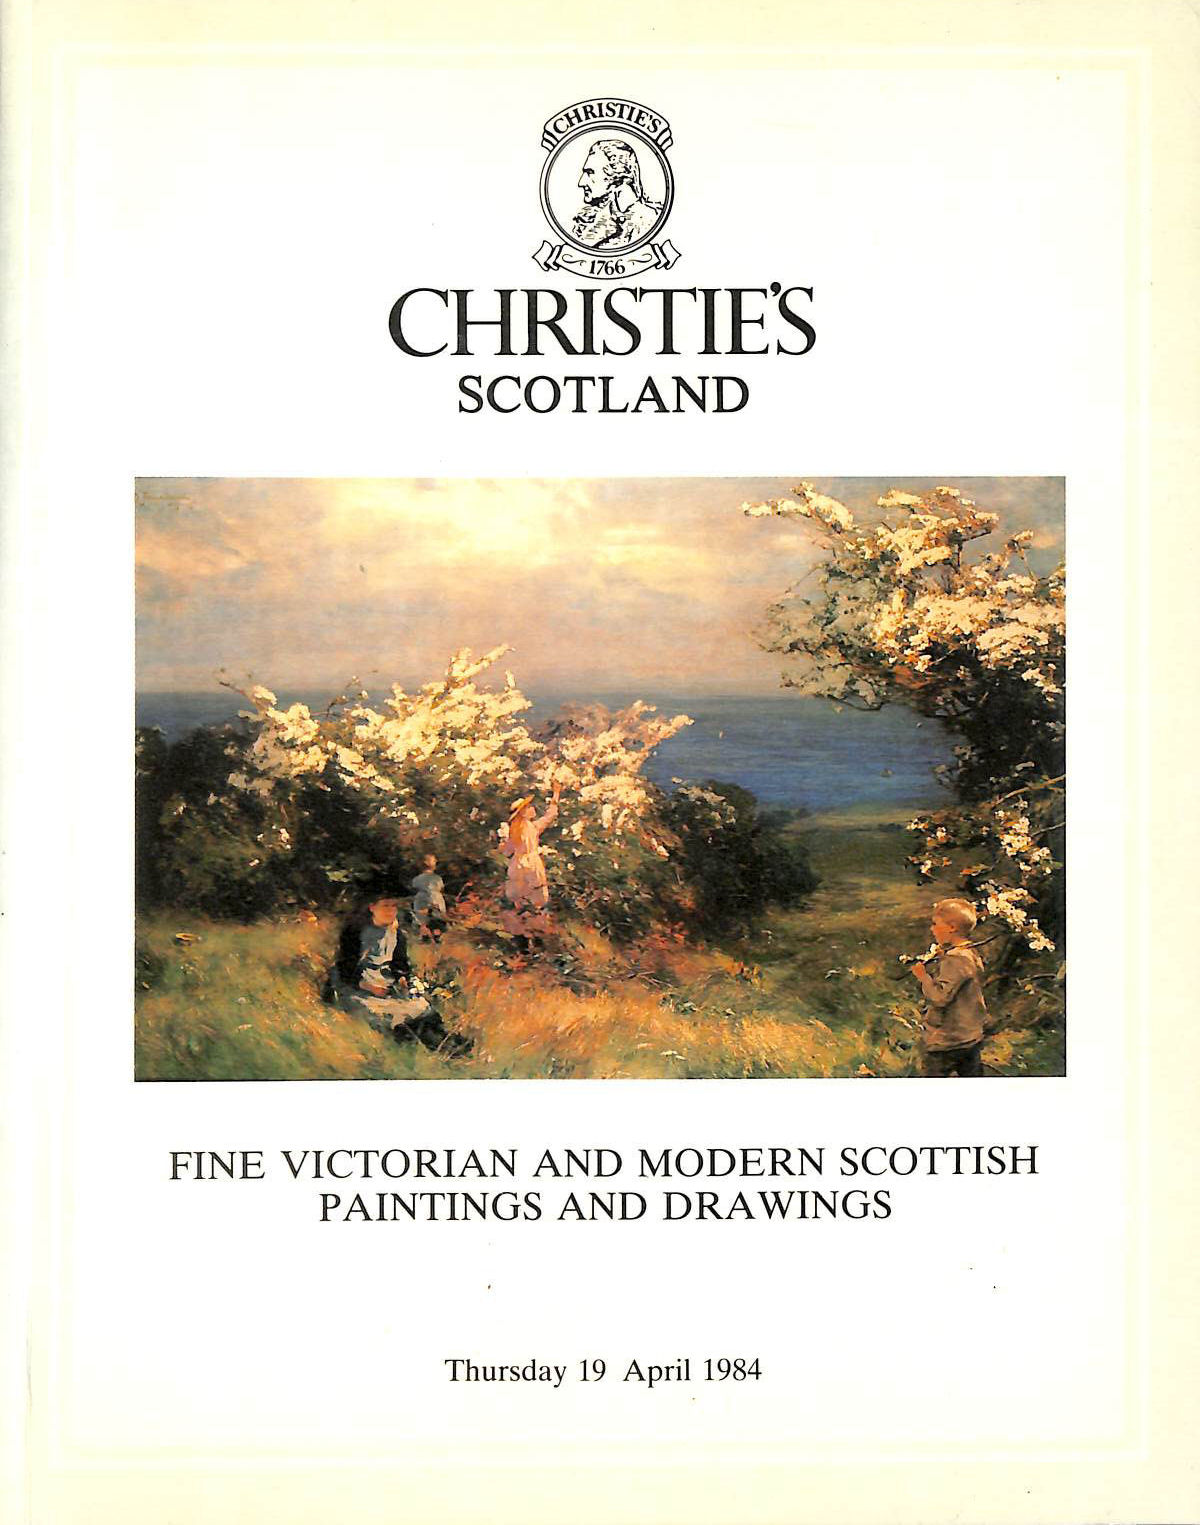 Image for Christie's Scotland, Fine Victorian and Modern Scottish Paintings and Drawings, Thursday 19 April 1984